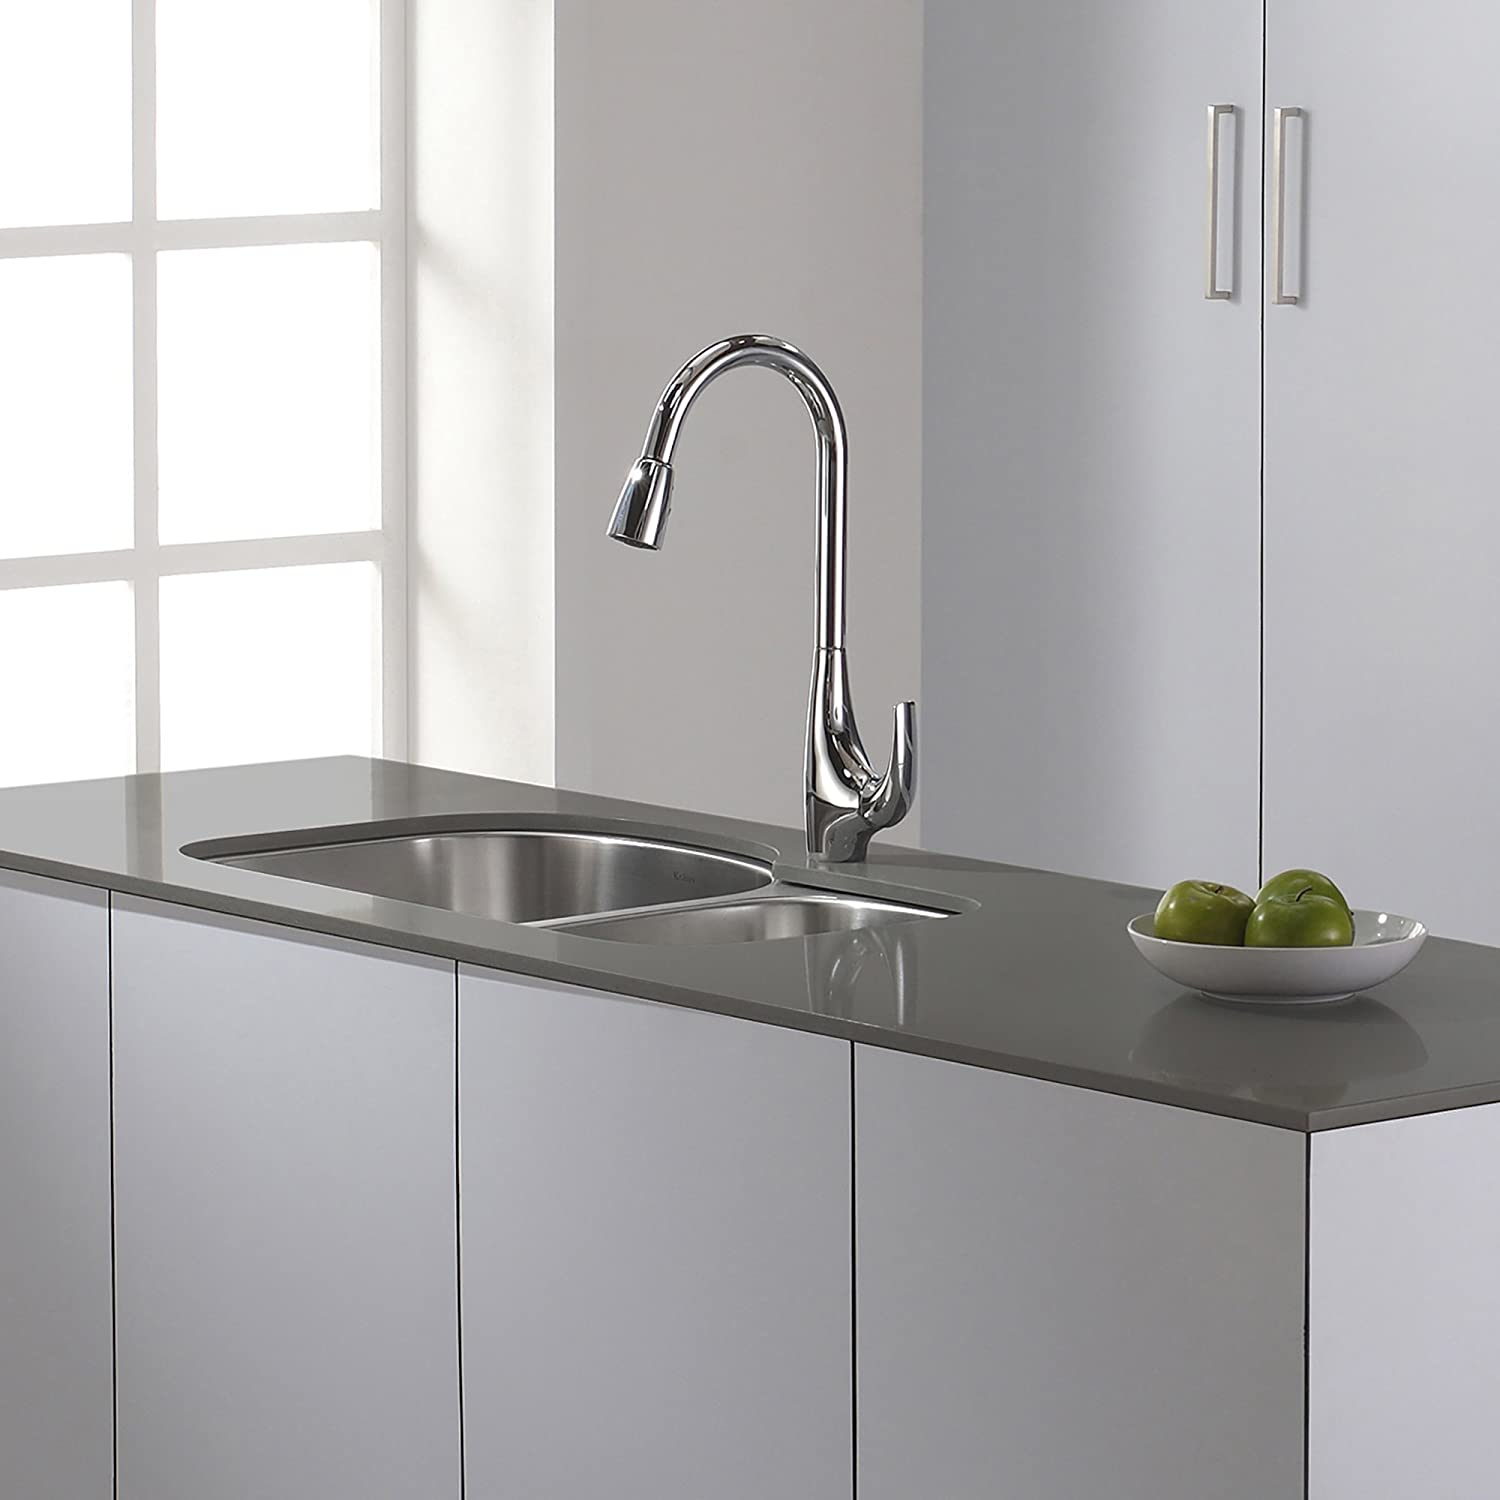 Kraus KPF-1621 Single Lever Pull Down Kitchen Faucet Chrome - Touch ...